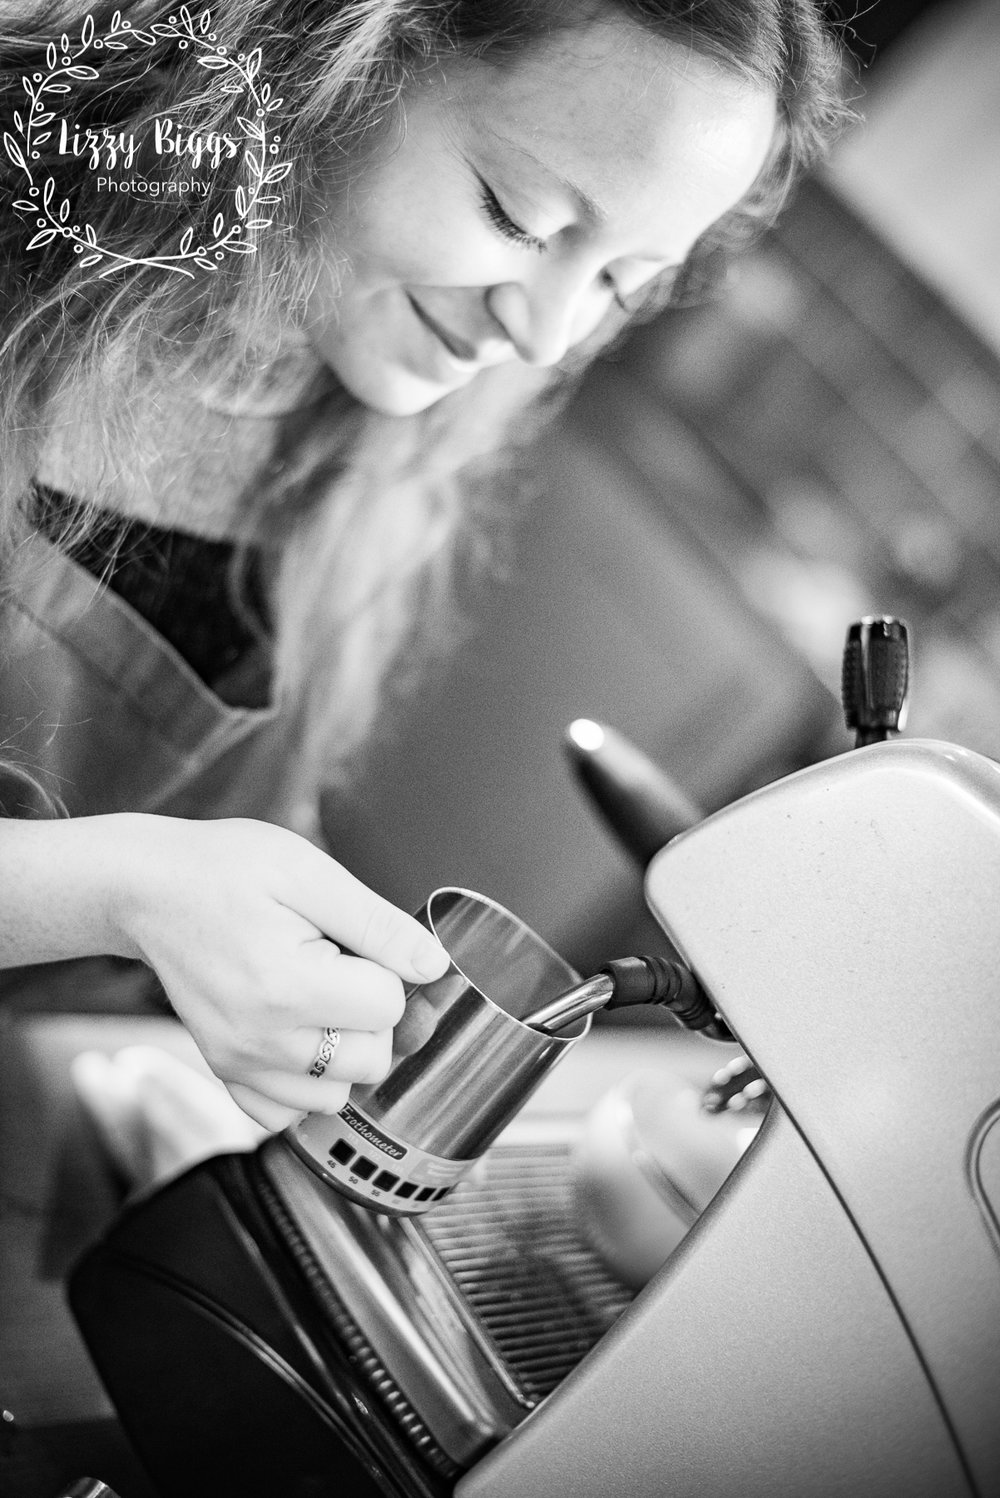 Lizzy-Biggs-Photography-Sarah-Making-Coffee-Festival-Coffee.JPG